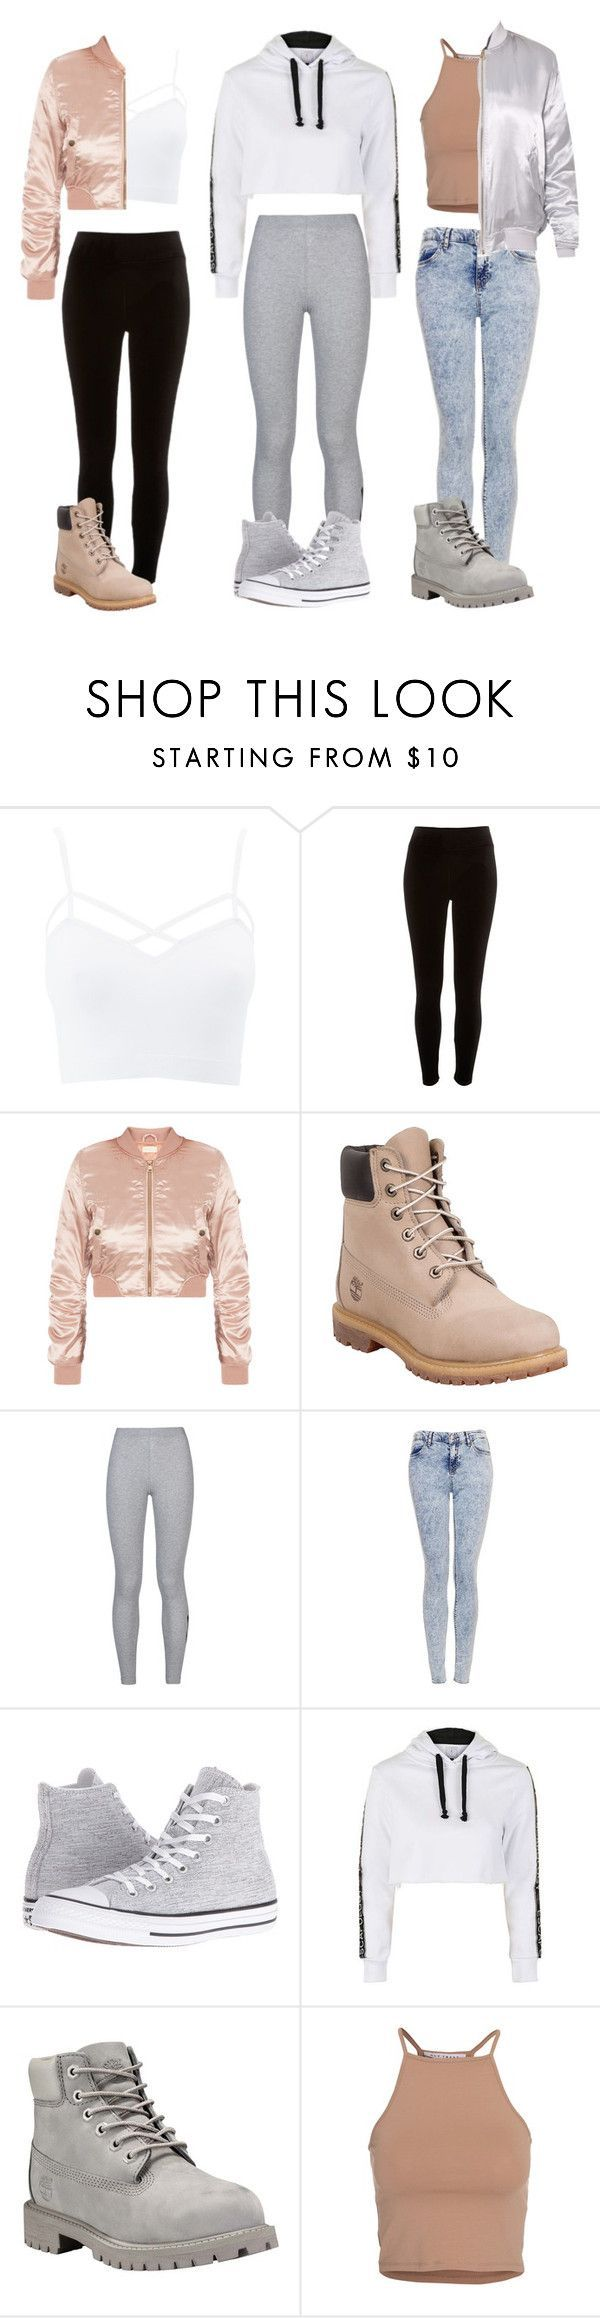 """""""3 """"baddie"""" outfits"""" by lily-rose-marie-alexandrr on Polyvore featuring Charlotte Russe, River Island, Timberland, NIKE, Topshop, Converse, NLY Trend and plus size clothing"""